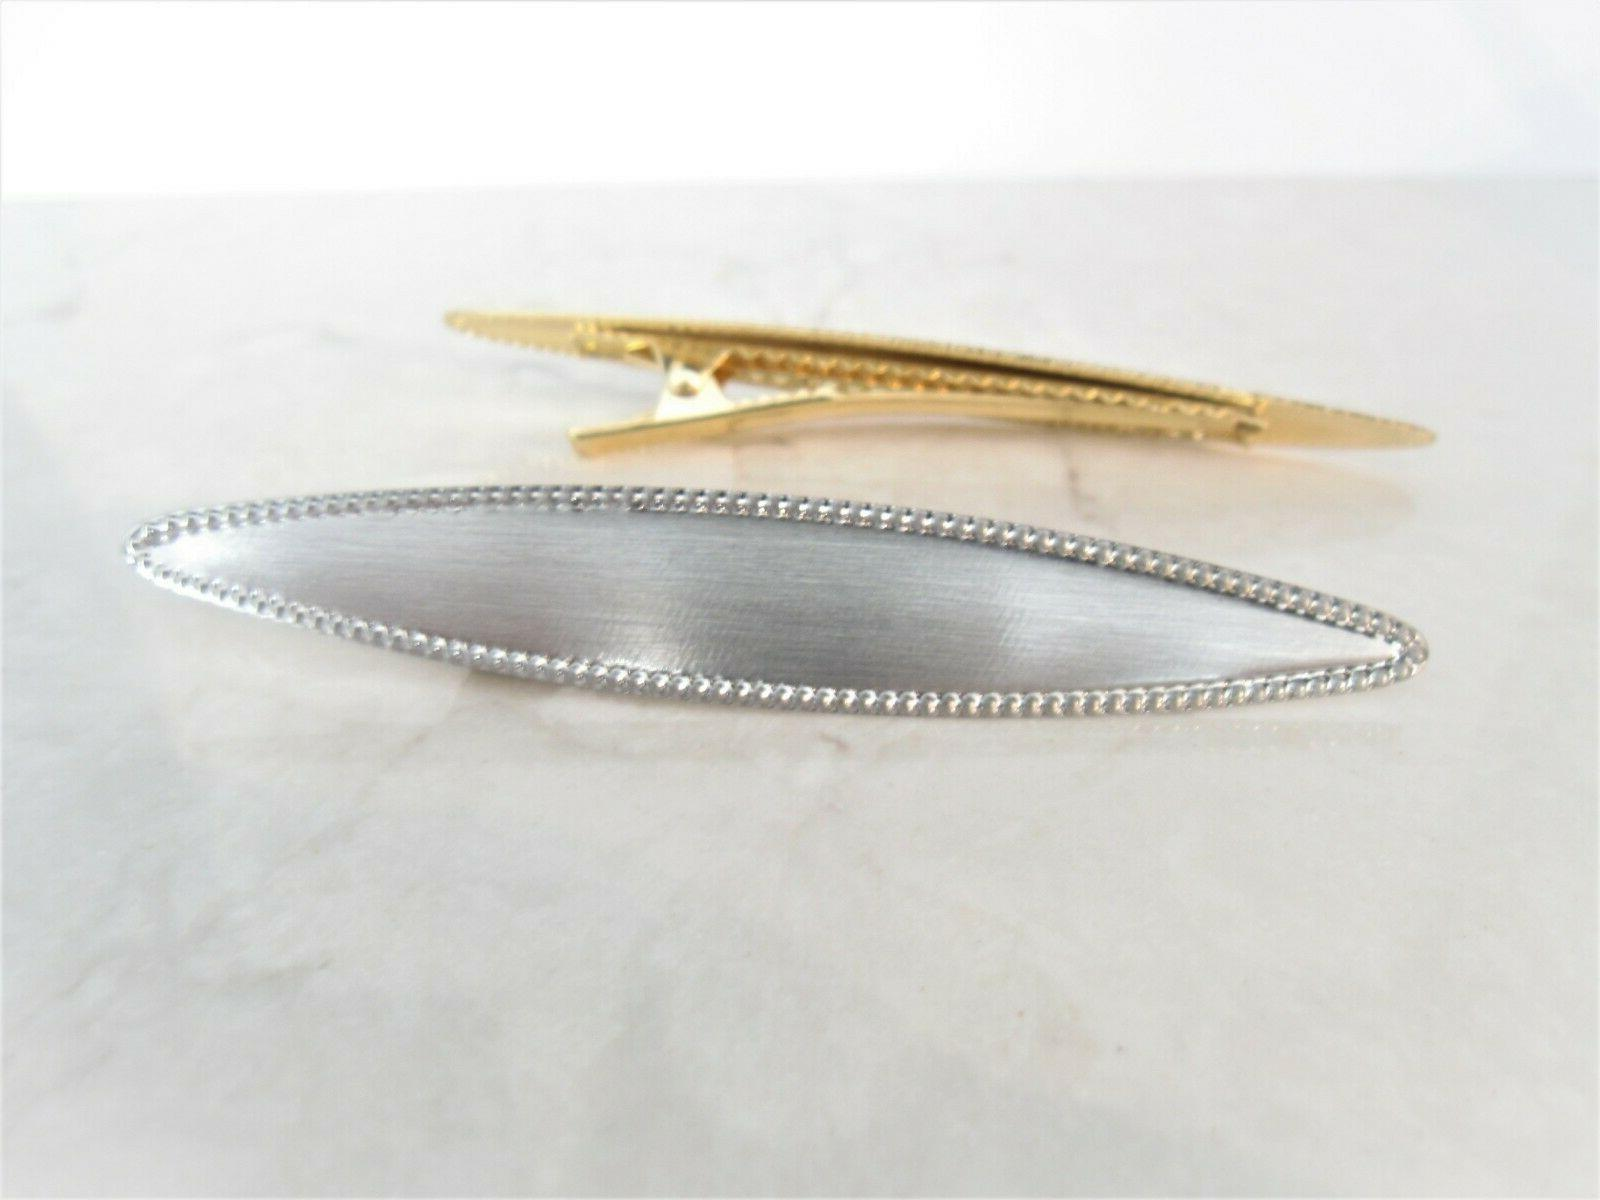 3 inch smaller brushed gold or silver